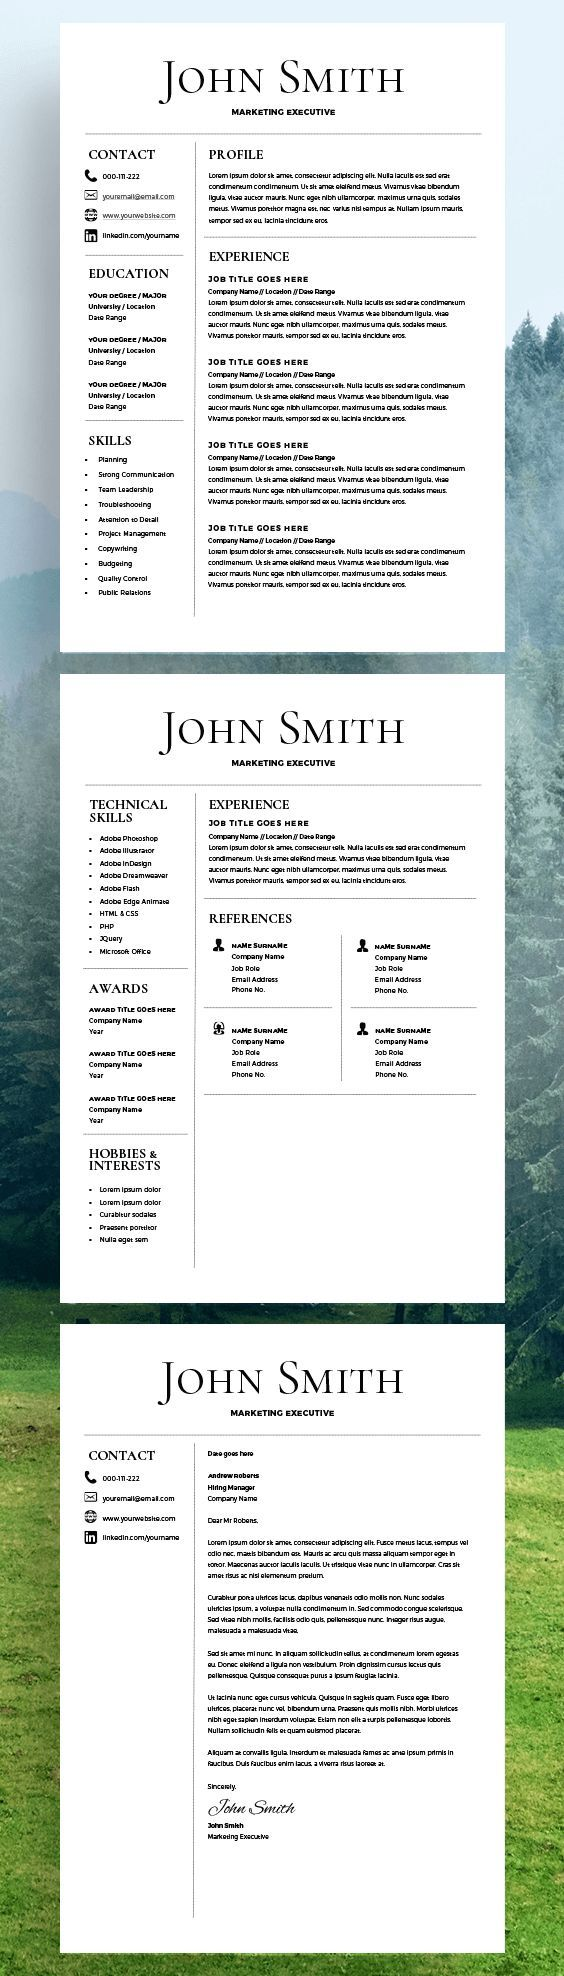 Contemporary Resume Templates Resume Template  Cv Template  Free Cover Letter  Ms Word On Mac